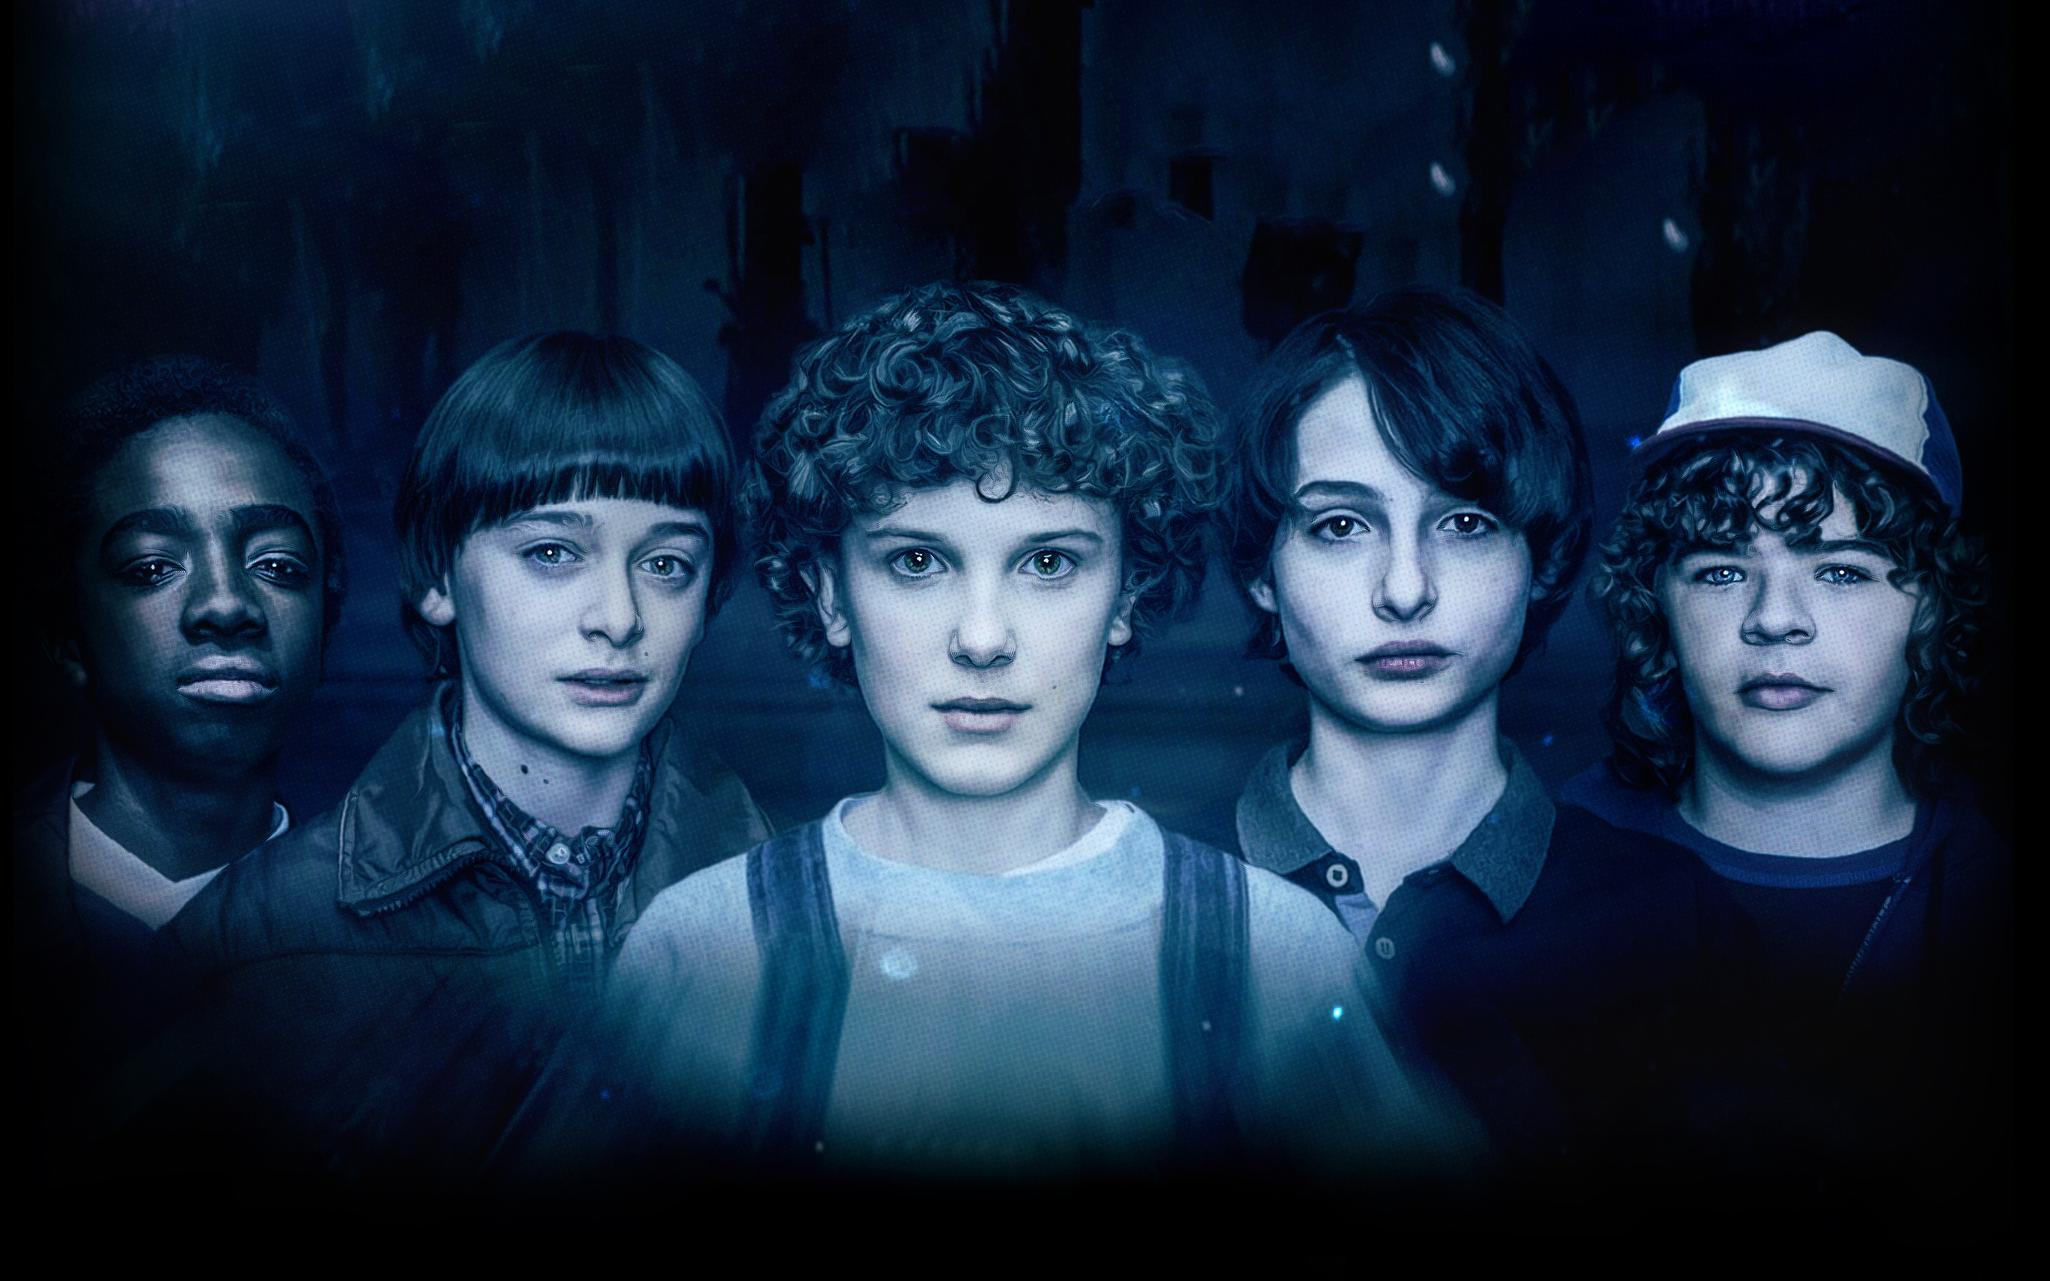 Stranger Things 2 Wallpaper Hd For Android Apk Download